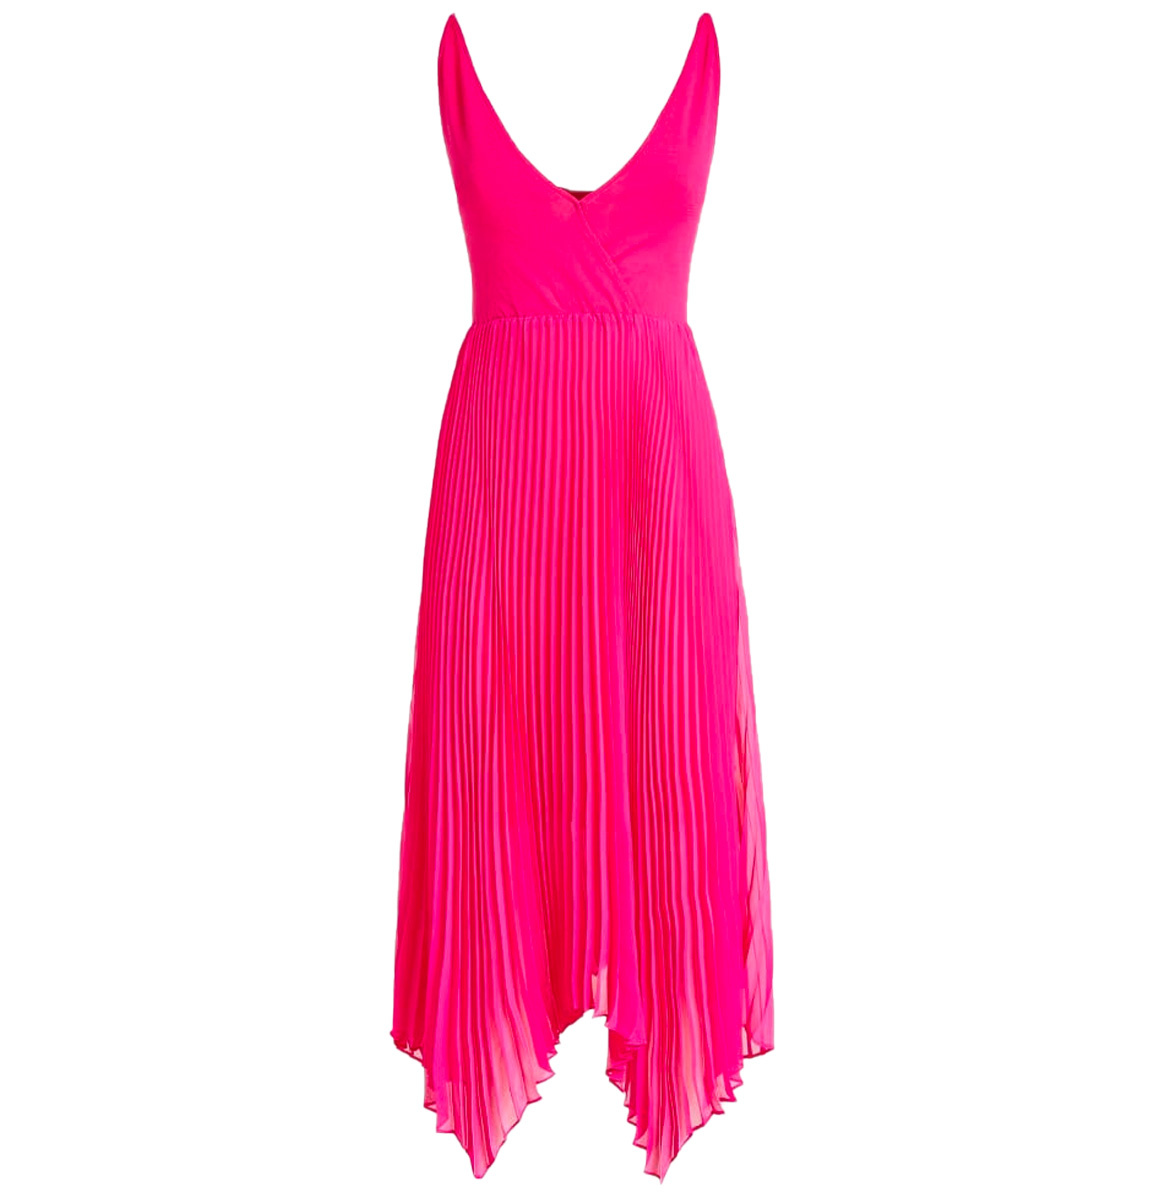 Guess by Marciano Dress long pink Guess by Marciano